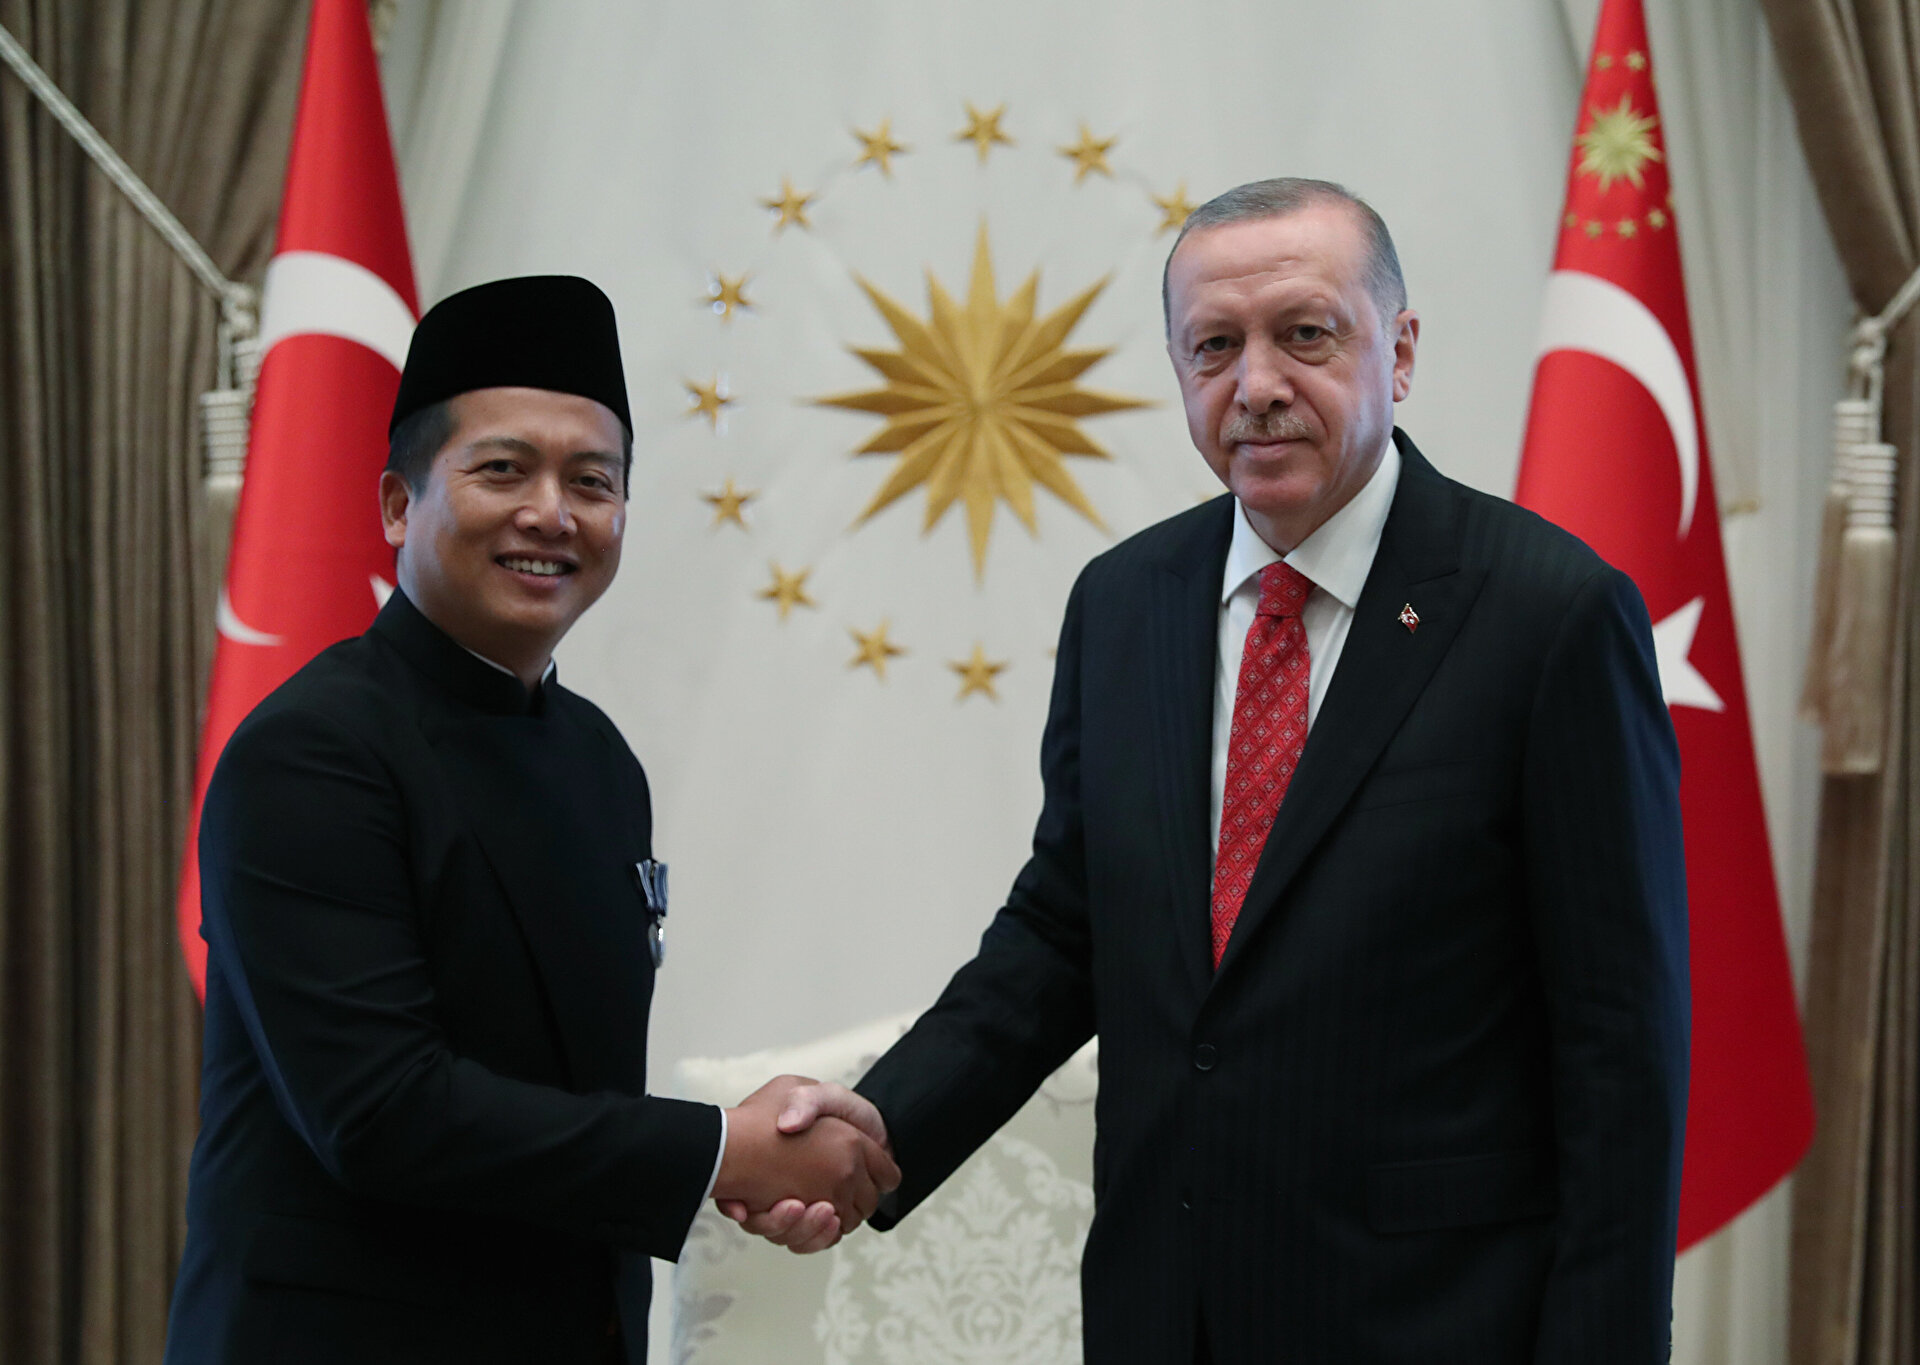 Indonesia's ambassador presents the letter of credence to Turkey's Erdoğan